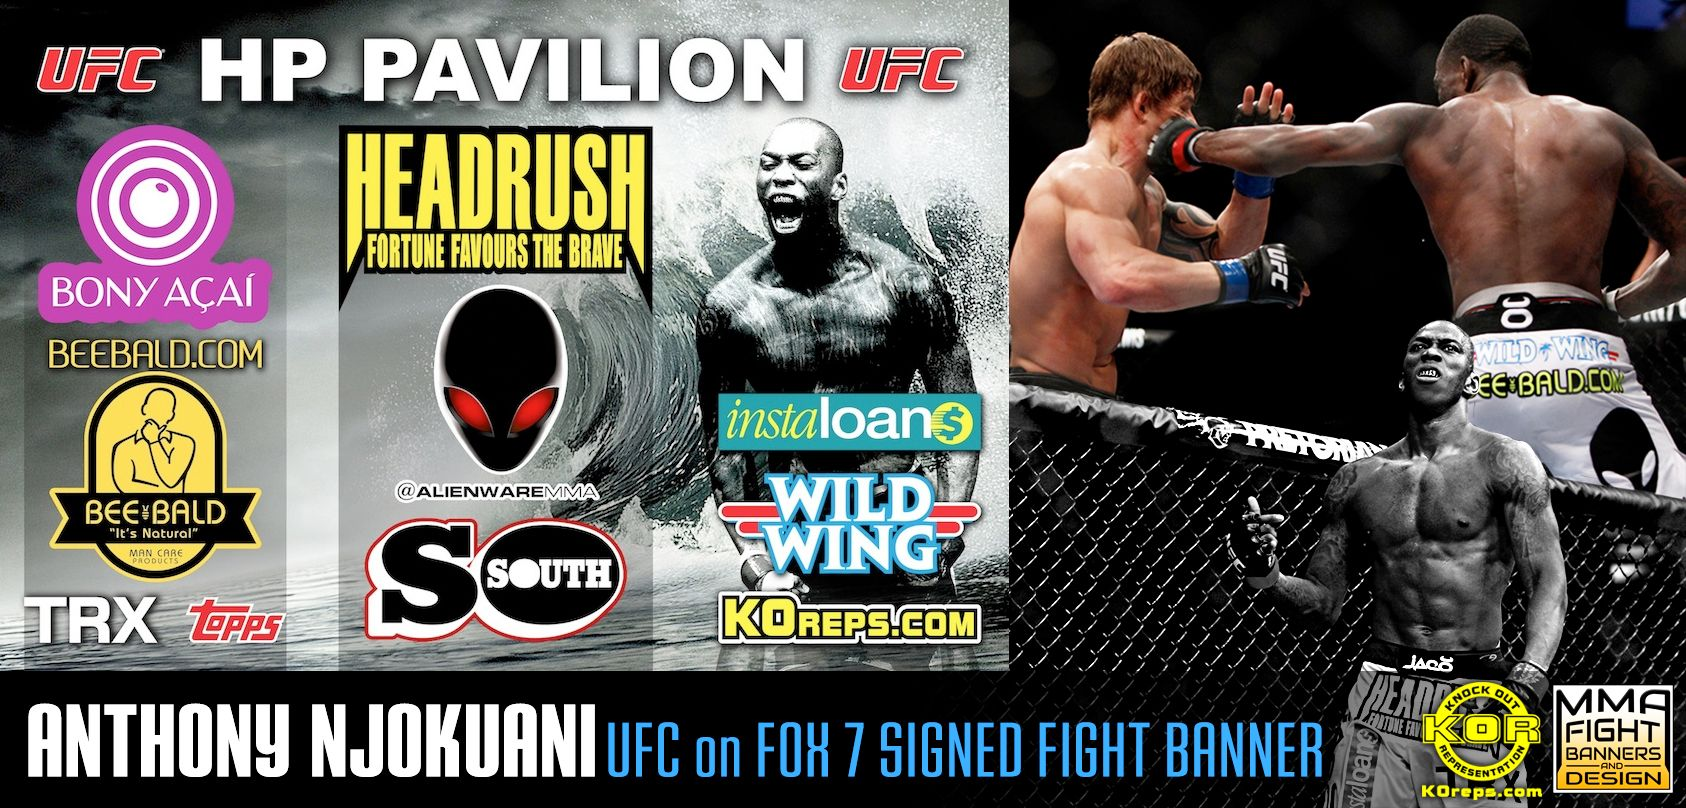 Own Anthony Njokuani's signed UFC on Fox 7 fight banner! #MMA ...